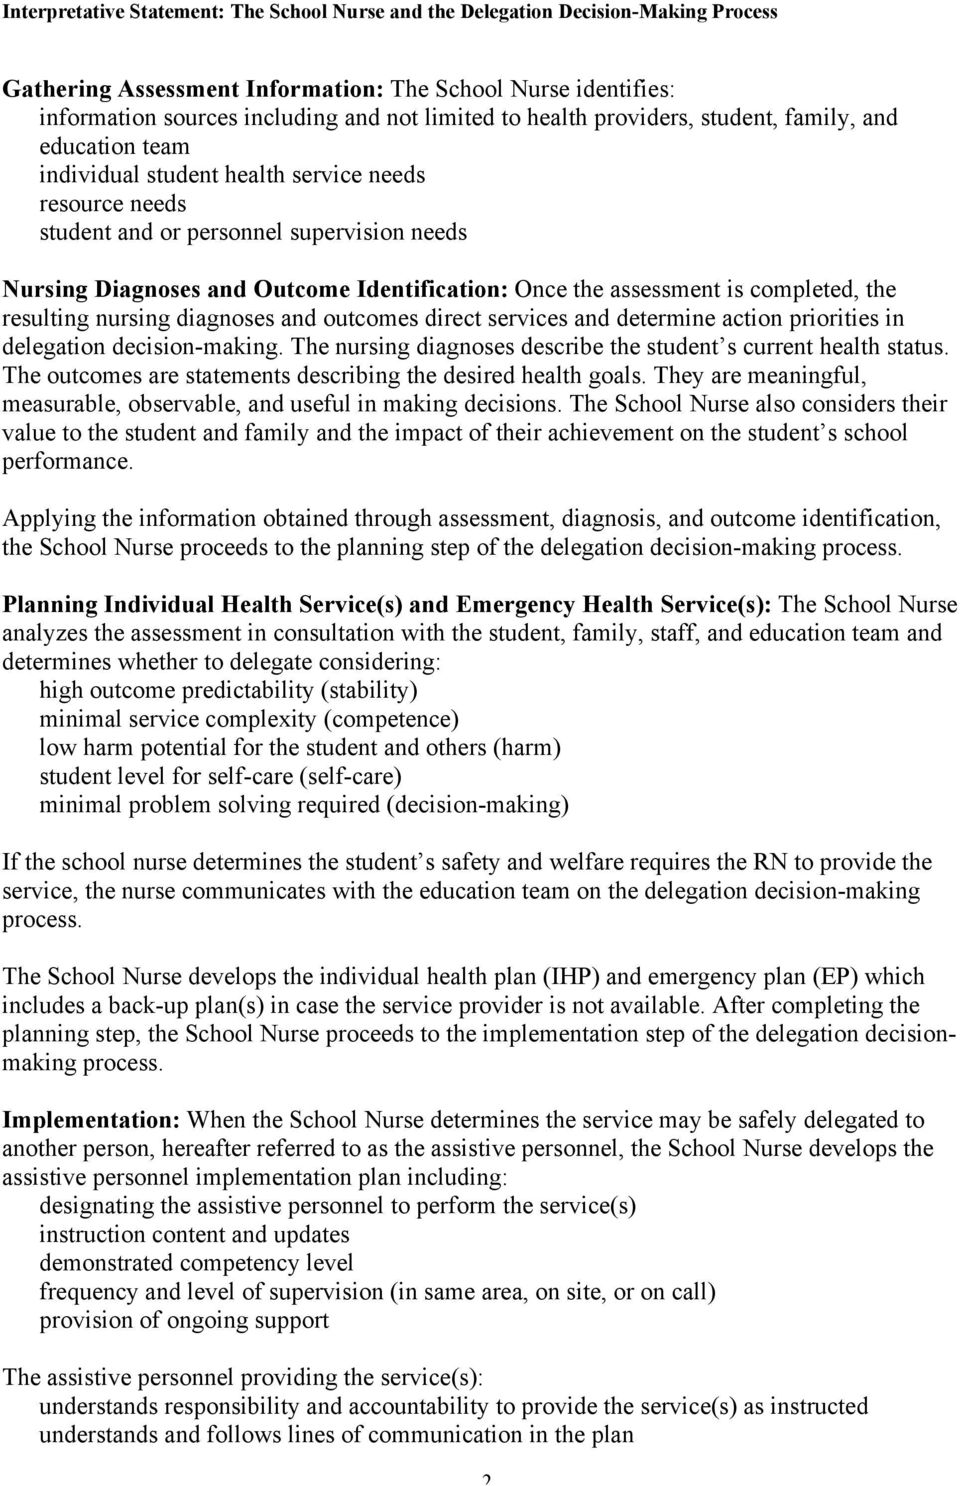 services and determine action priorities in delegation decision-making. The nursing diagnoses describe the student s current health status.